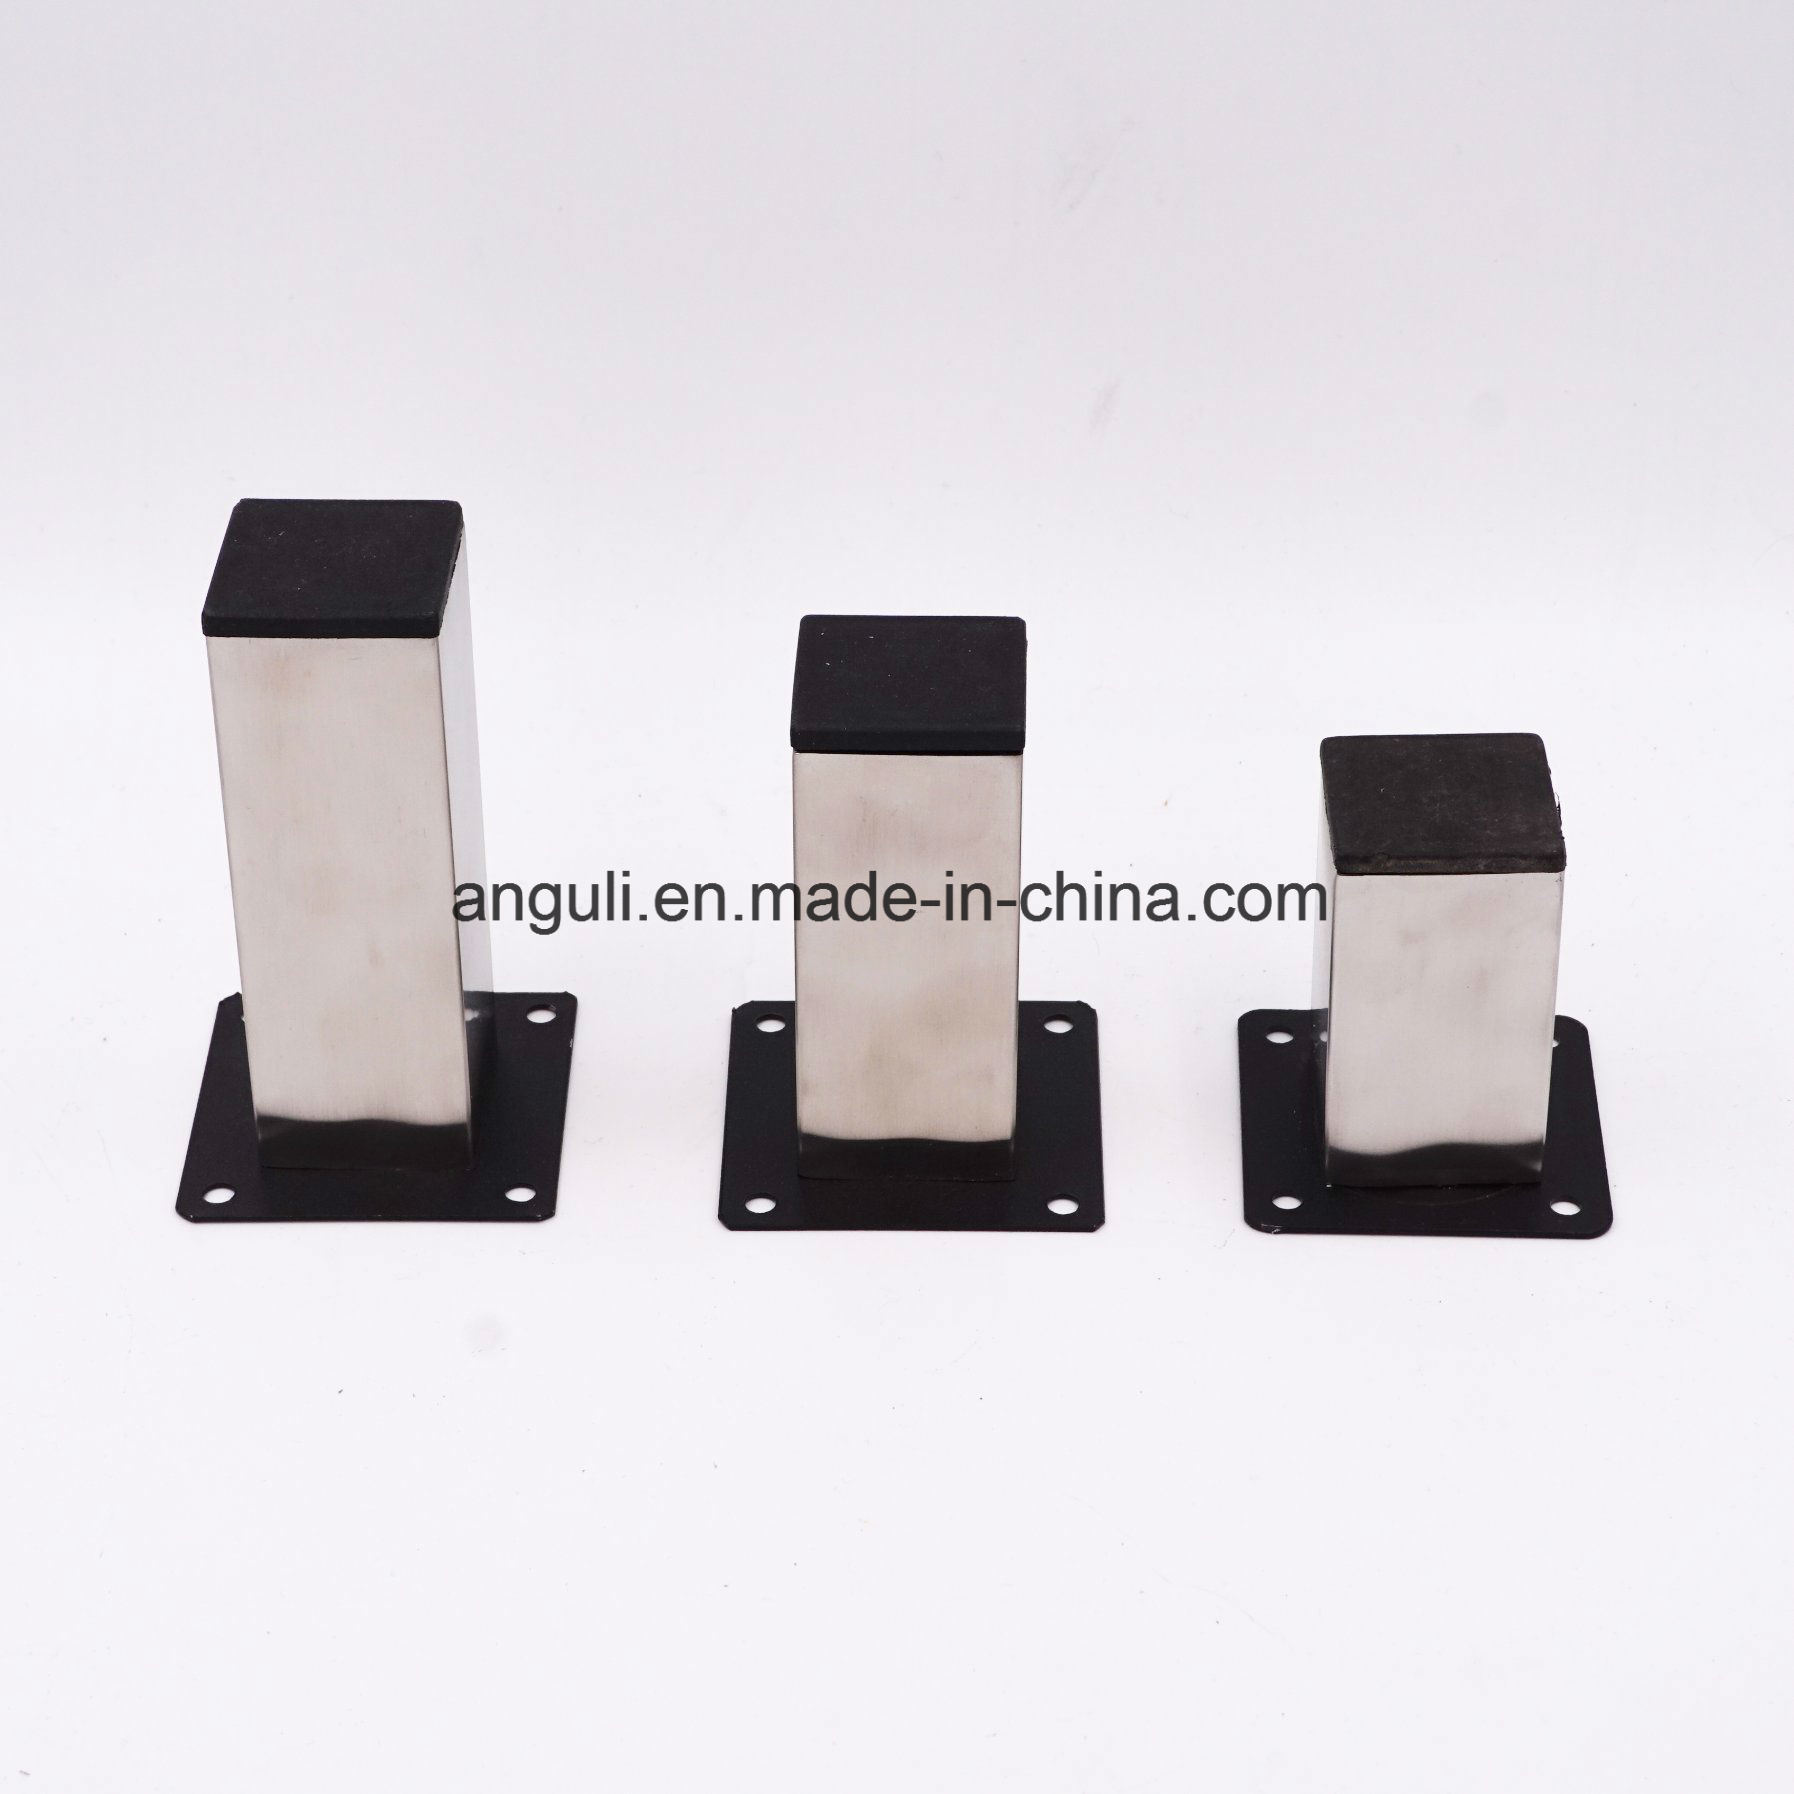 stainless steel chair hsn code white wing slipcover china high quality hot sale customized brush sofa leg